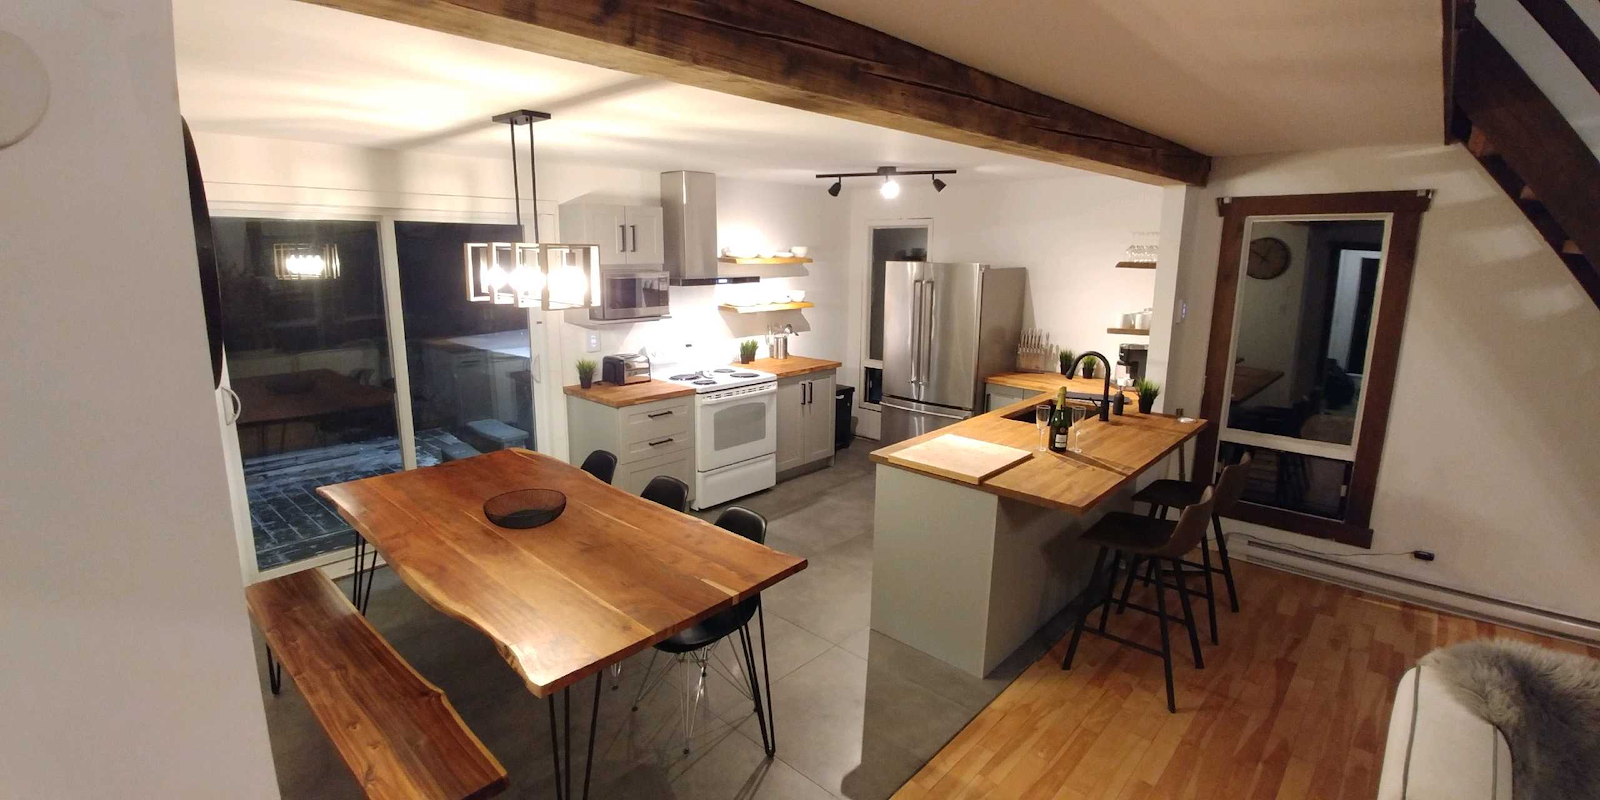 Cottages for rent for 9 people in Quebec #15